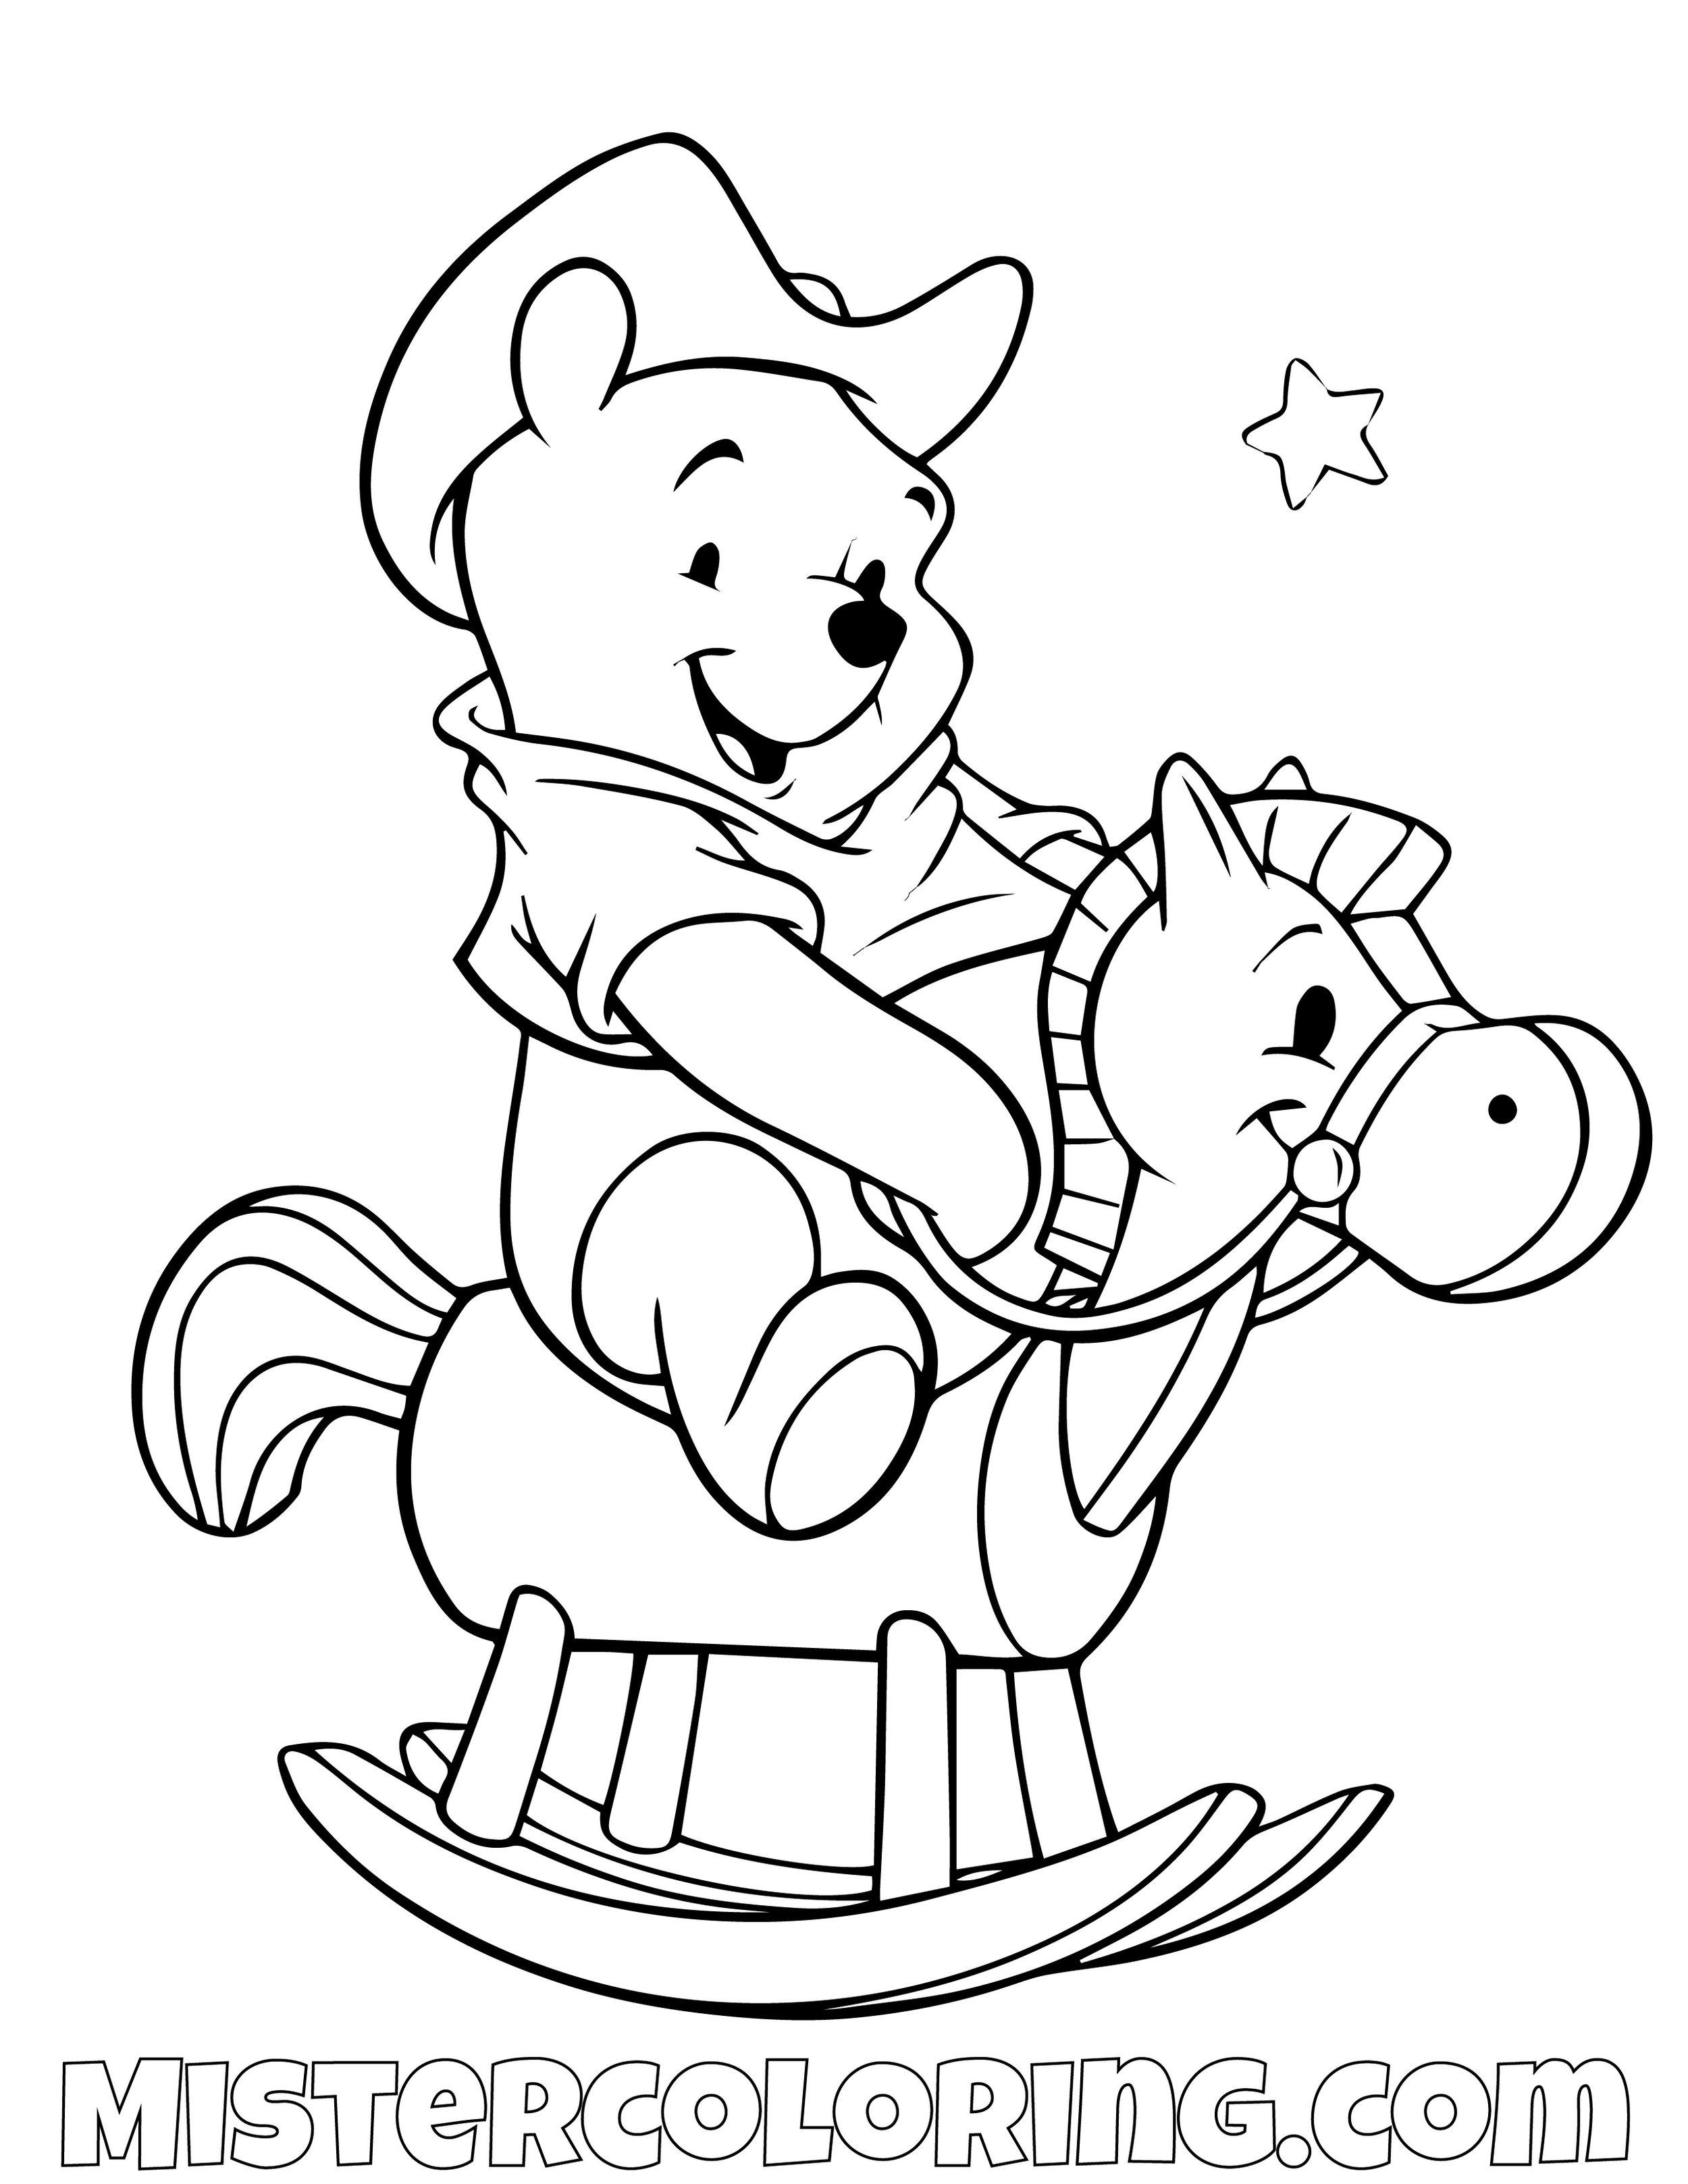 Winnie The Pooh Riding A Rocking Toy Horse Coloring Page